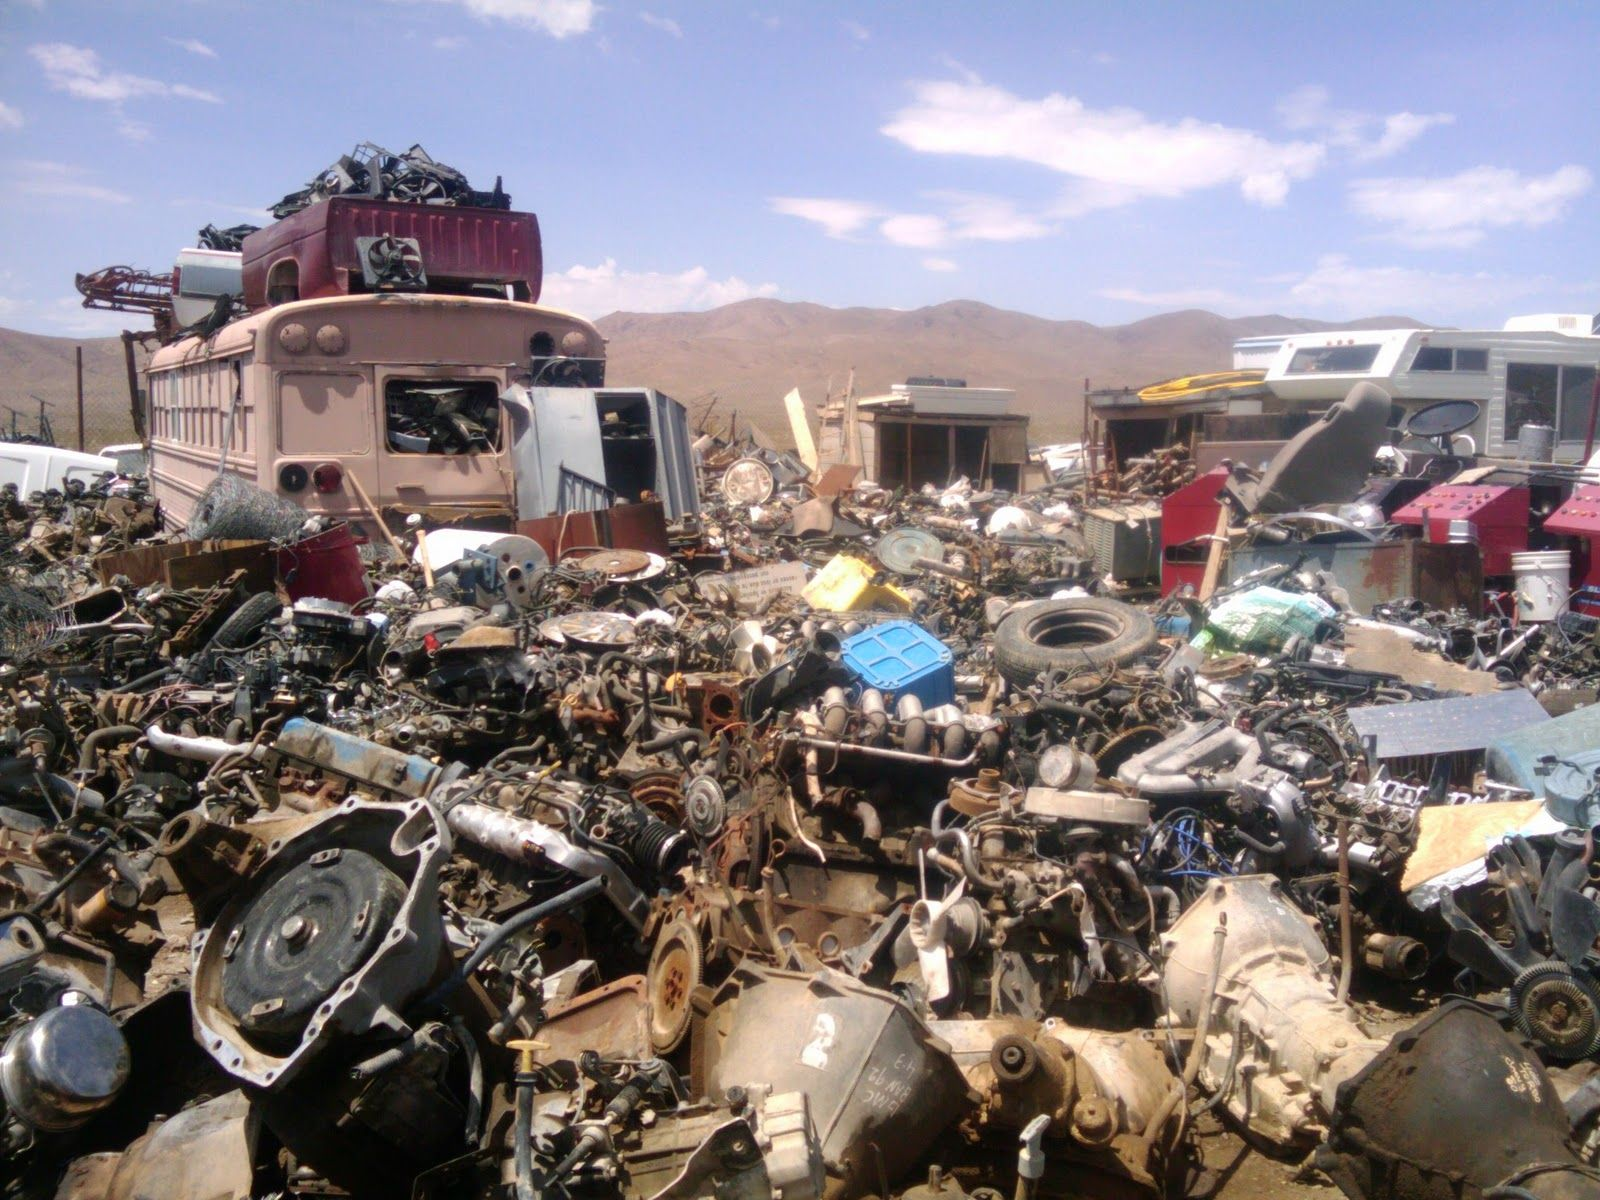 junkyard | was careful not to get too close to this stack, I was ...